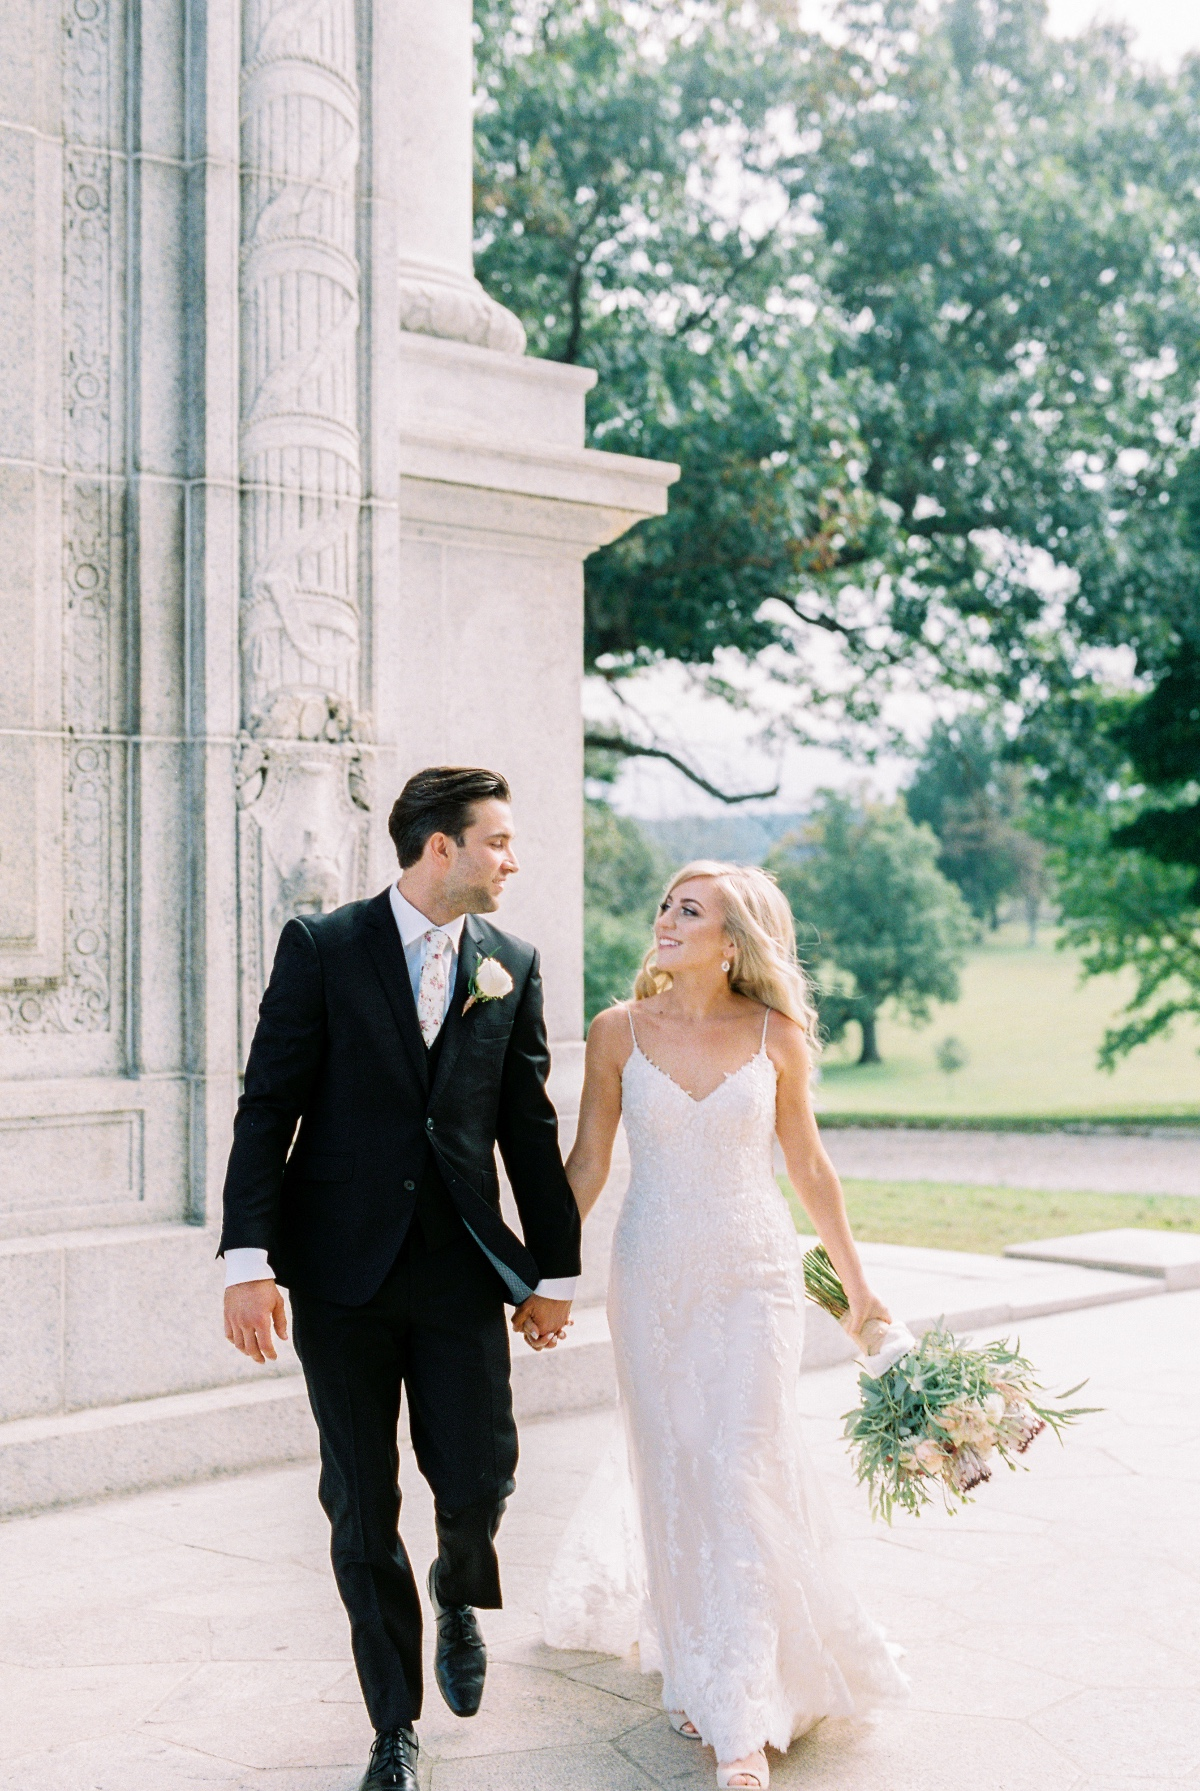 Chic floral-tie wedding